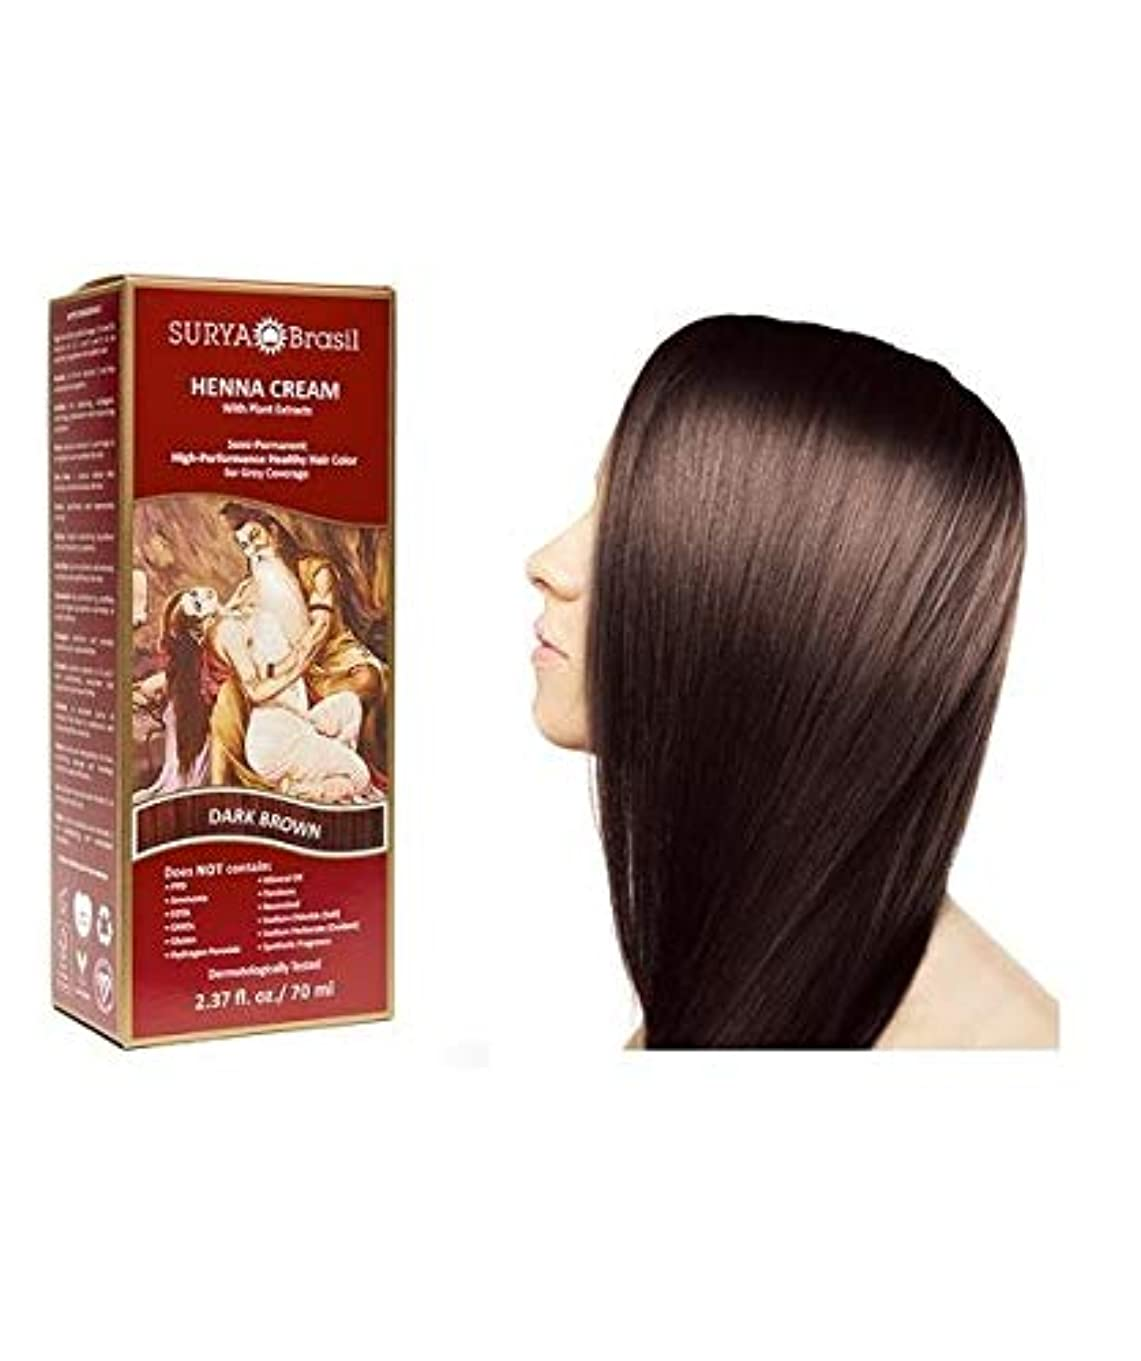 狐カール比類なきSurya Henna Henna Cream High-Performance Healthy Hair Color for Grey Coverage Dark Brown 2 37 fl oz 70 ml